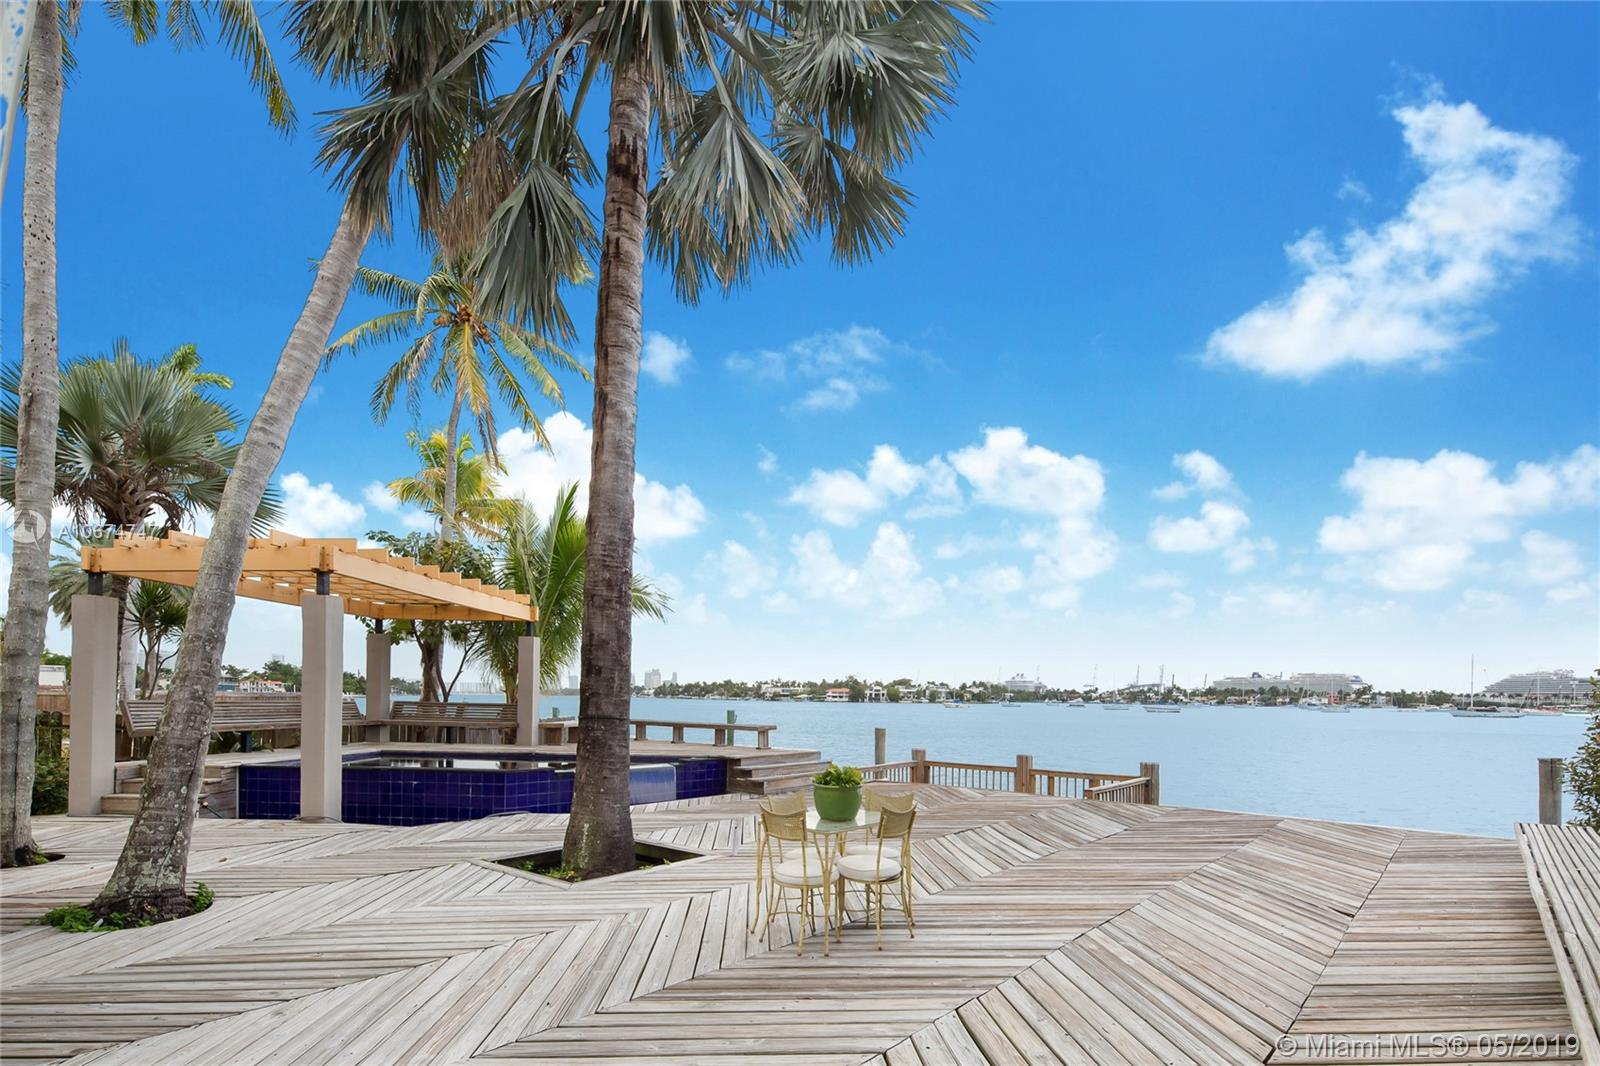 Priced for an immediate sale, this amazing opportunity to own a Waterfront property with 70 feet of Waterfrontage on a 12,250 sq. ft., lot has spectacular unobstructed open water views overlooking the water of Biscayne Bay, Downtown Miami Skyline, Cruise Ships, South Beach, Adrianne Arsht Center, Edgewater, and beautiful sunsets!  The property has a South exposure that allows for lots of natural light that fills the home all year around.  Located on the hip Venetian Islands this property is a short distance to Miami International Airport, Wynwood, Design District, South Beach, Performing Arts Center, American Airlines Arena, Downtown Miami, Brickell Area, Restaurants, Shops, Galleries, Houses of Worship, Supermarkets, and much more.  Great for entertaining, and investment opportunity.